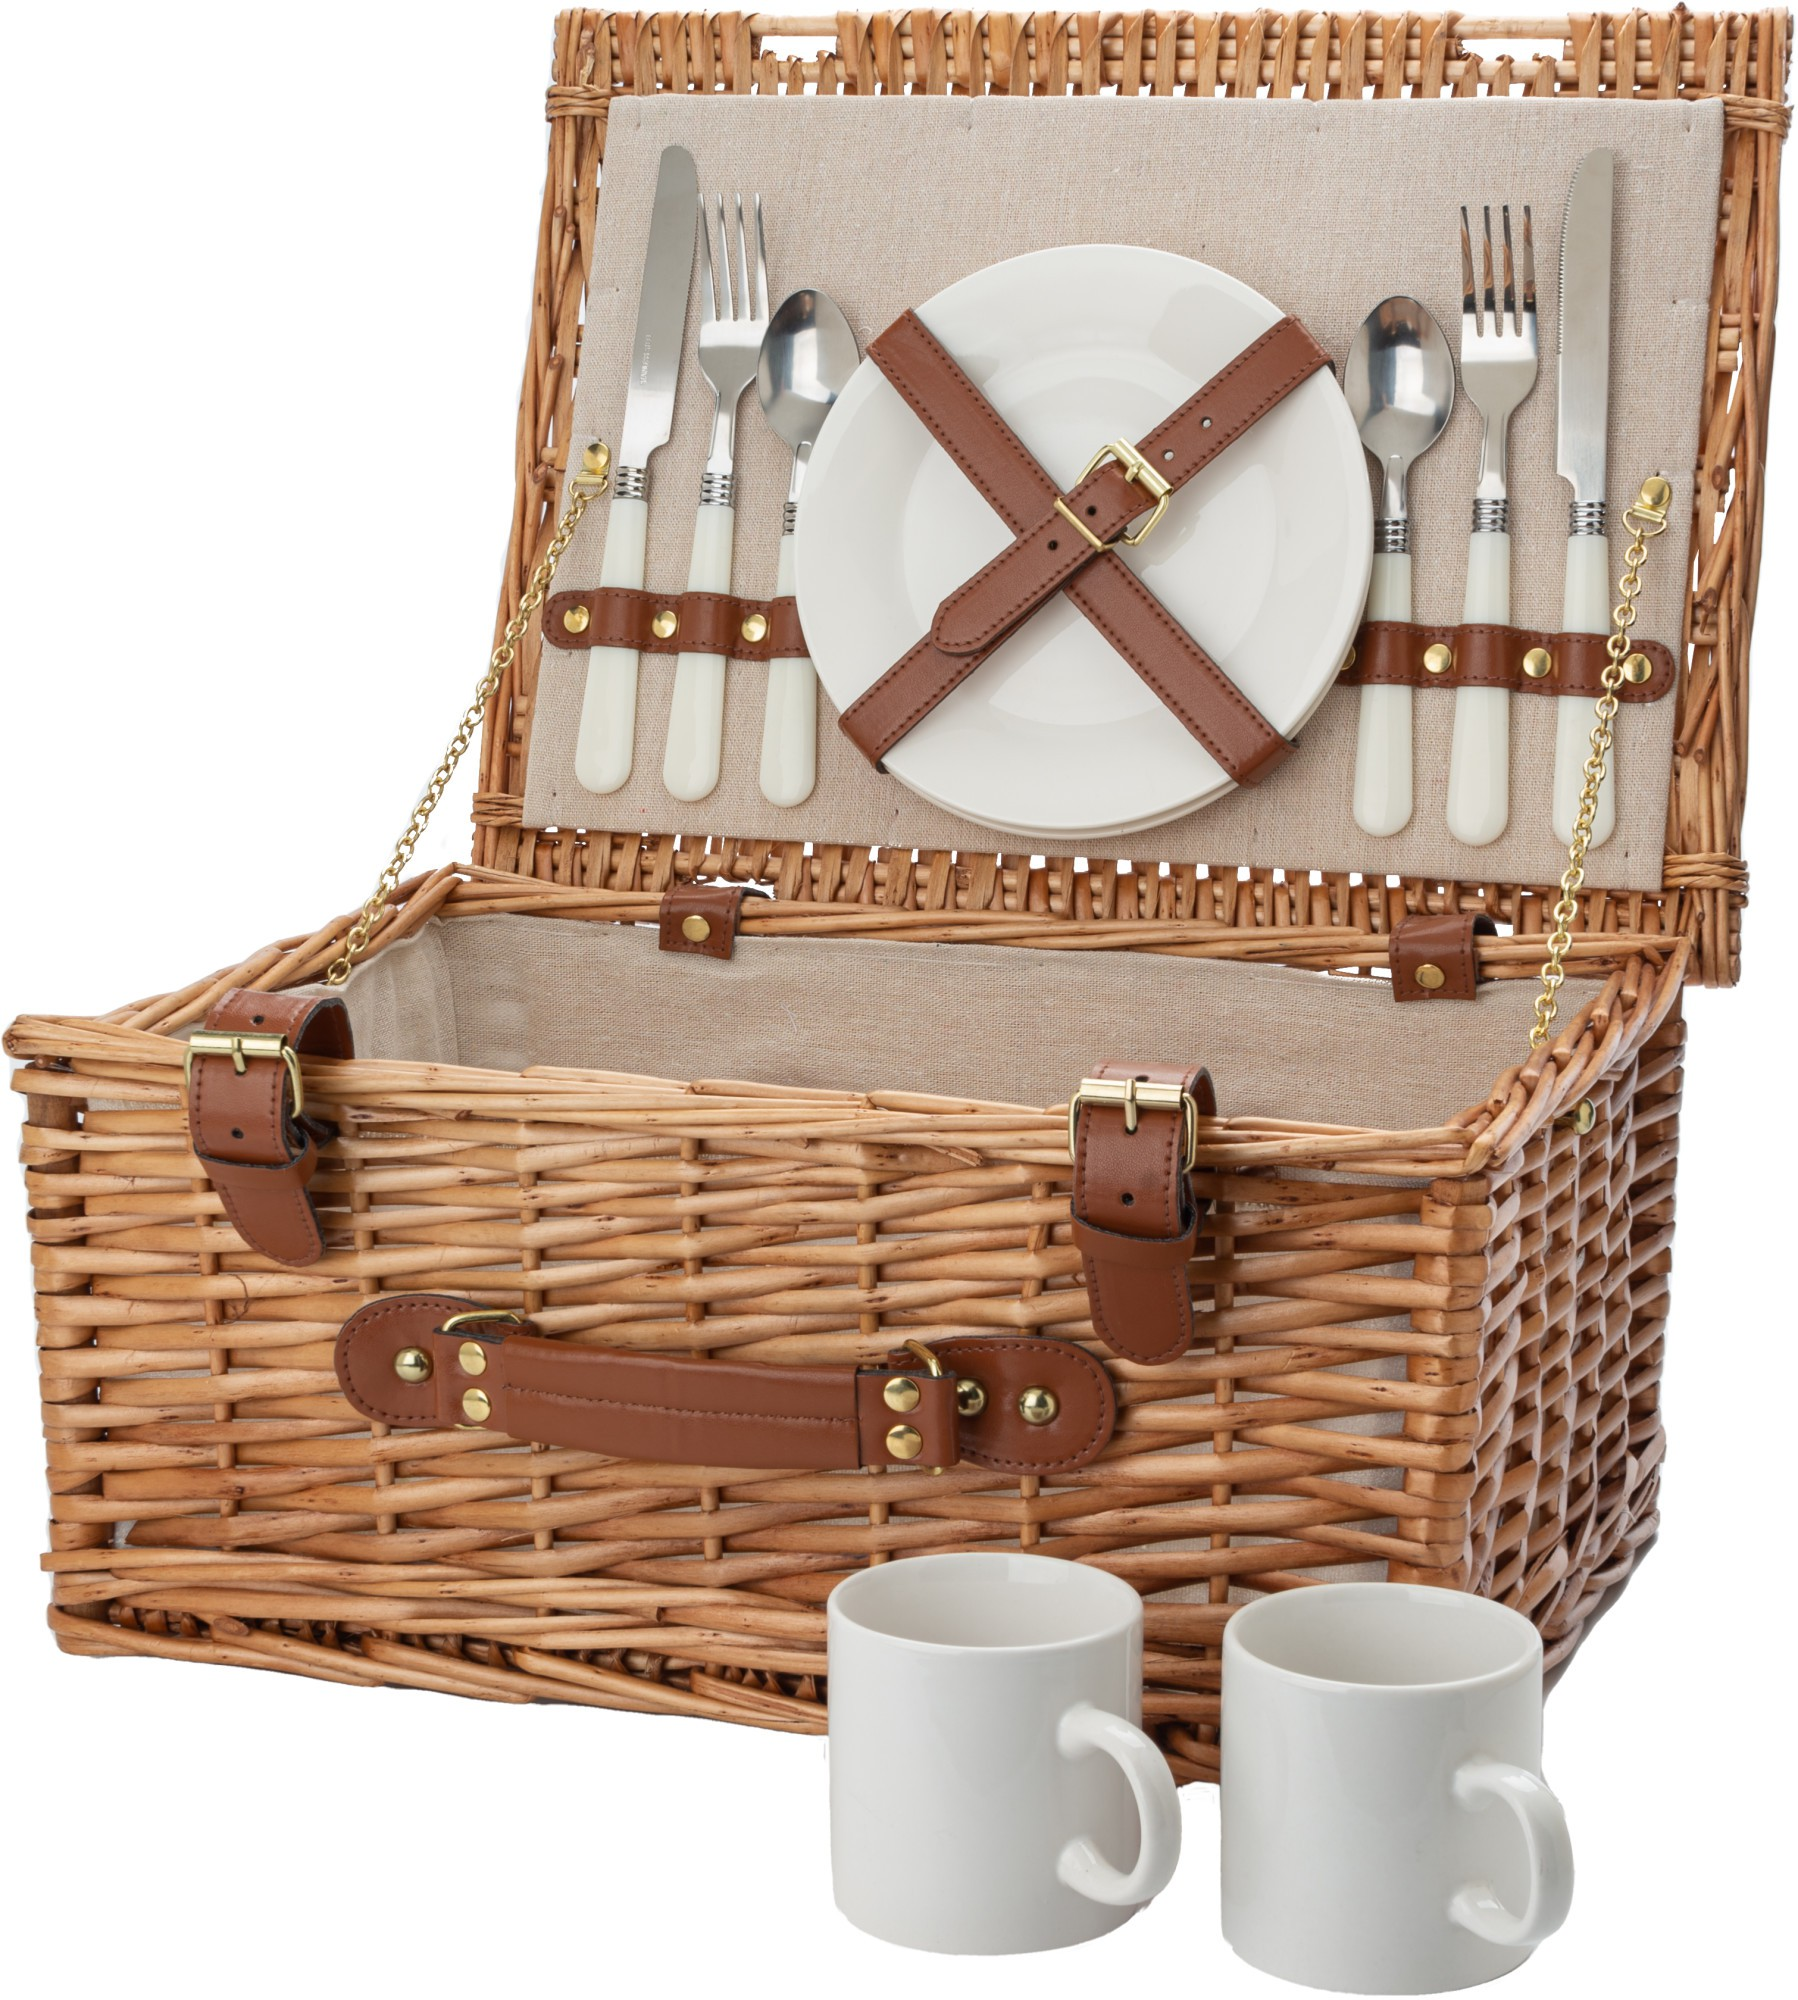 CANTERBURY PICNIC Willow Woven Basket Set for Two Picnic Time 212-86-915